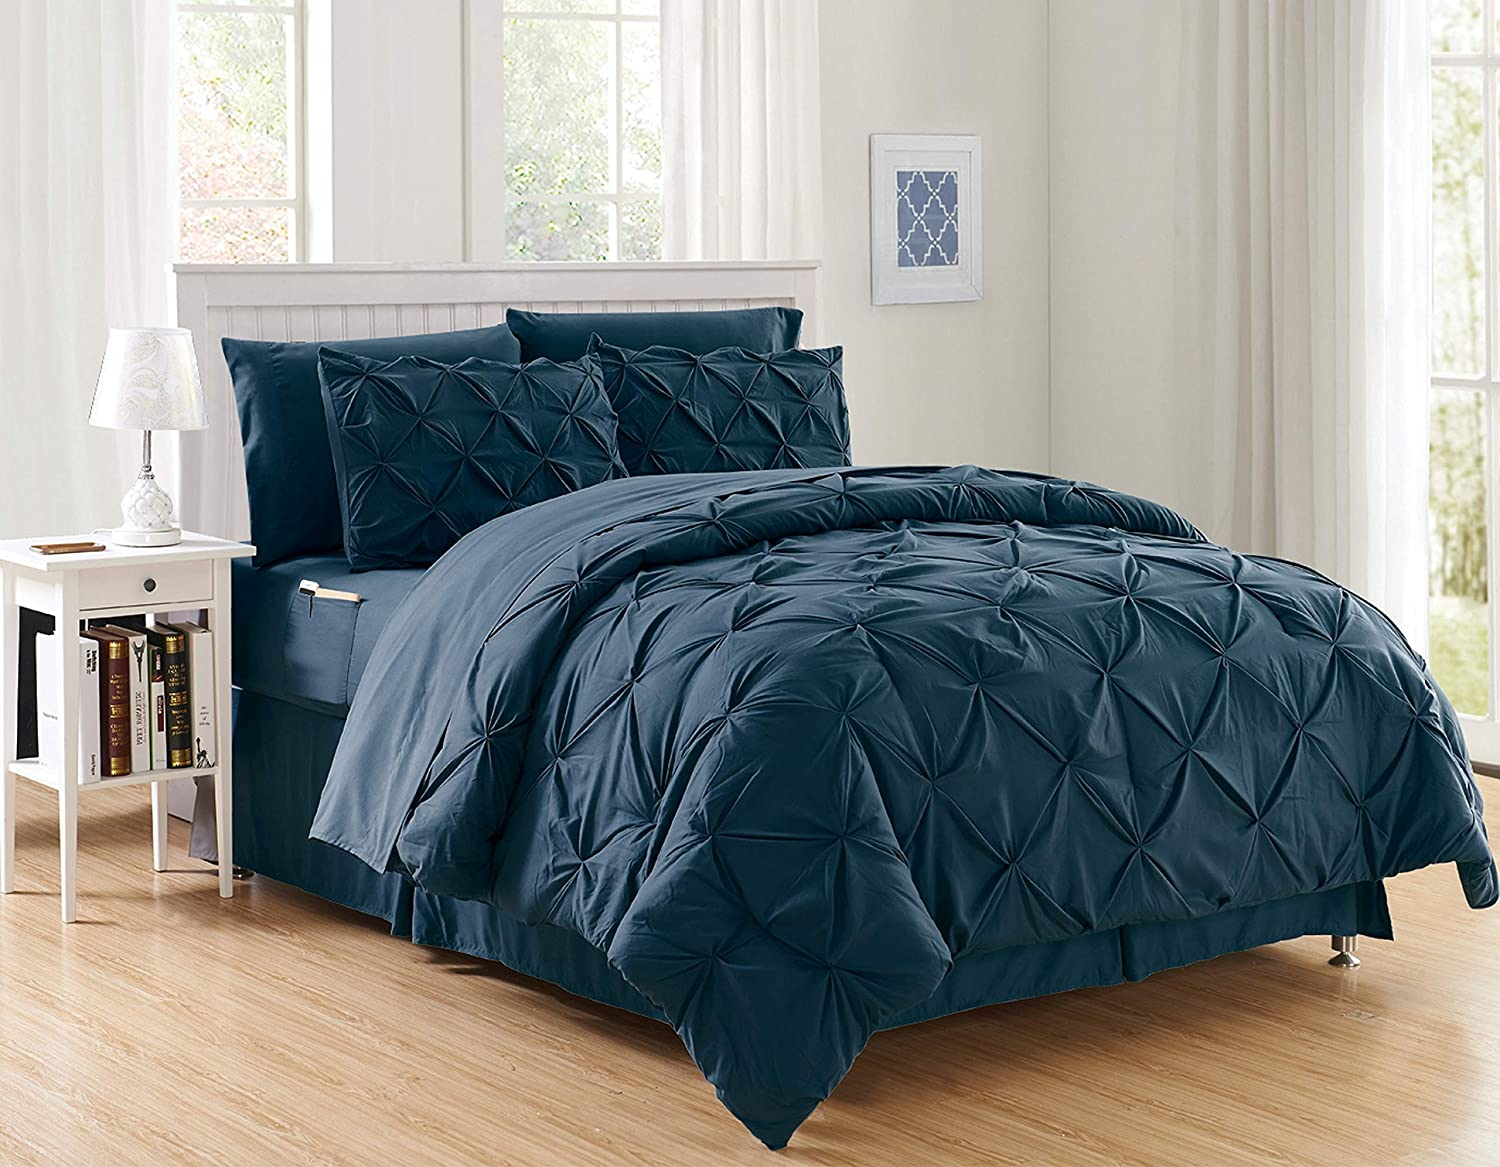 Navy bluee Full Queen Luxury Best, Softest, Coziest 8-Piece Bed-in-a-Bag Comforter Set on Amazon  Elegant Comfort - Silky Soft Complete Set Includes Bed Sheet Set with Double Sided Storage Pockets, King Cal King, Black